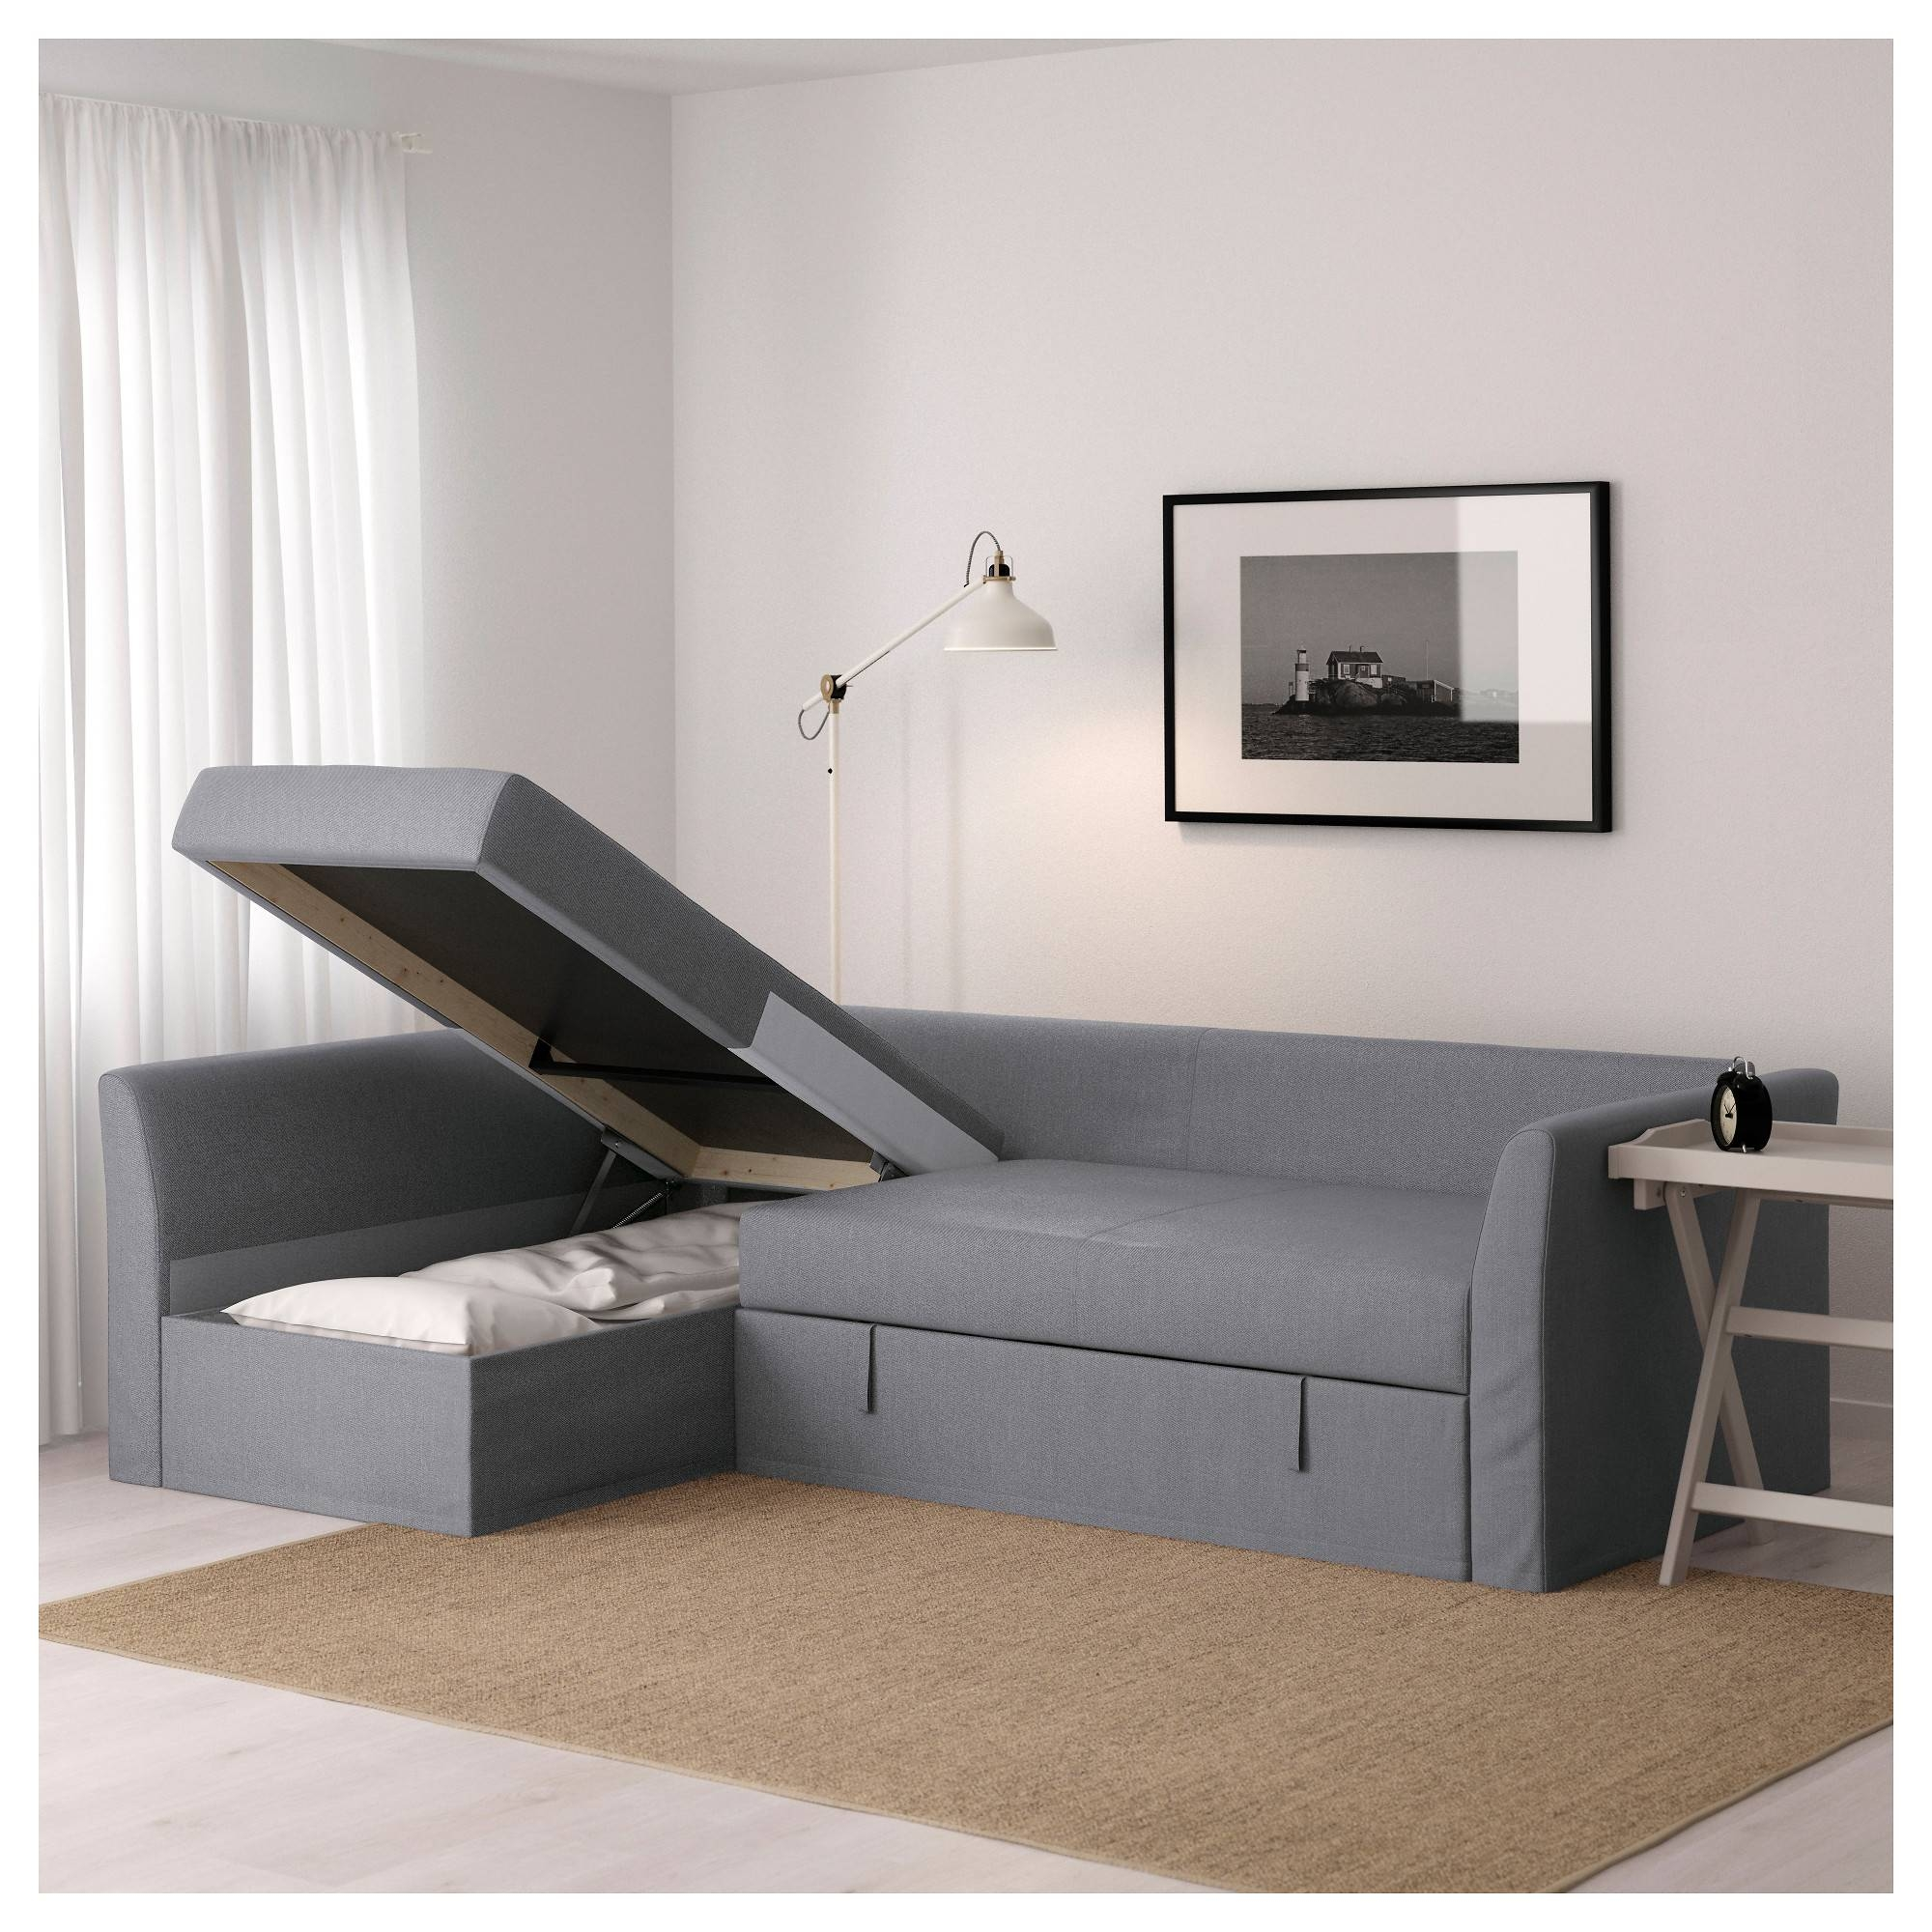 Furniture: Ikea Sofa Beds | Sofa With Pull Out Bed Ikea | Ikea within Cheap Corner Sofa Beds (Image 13 of 30)